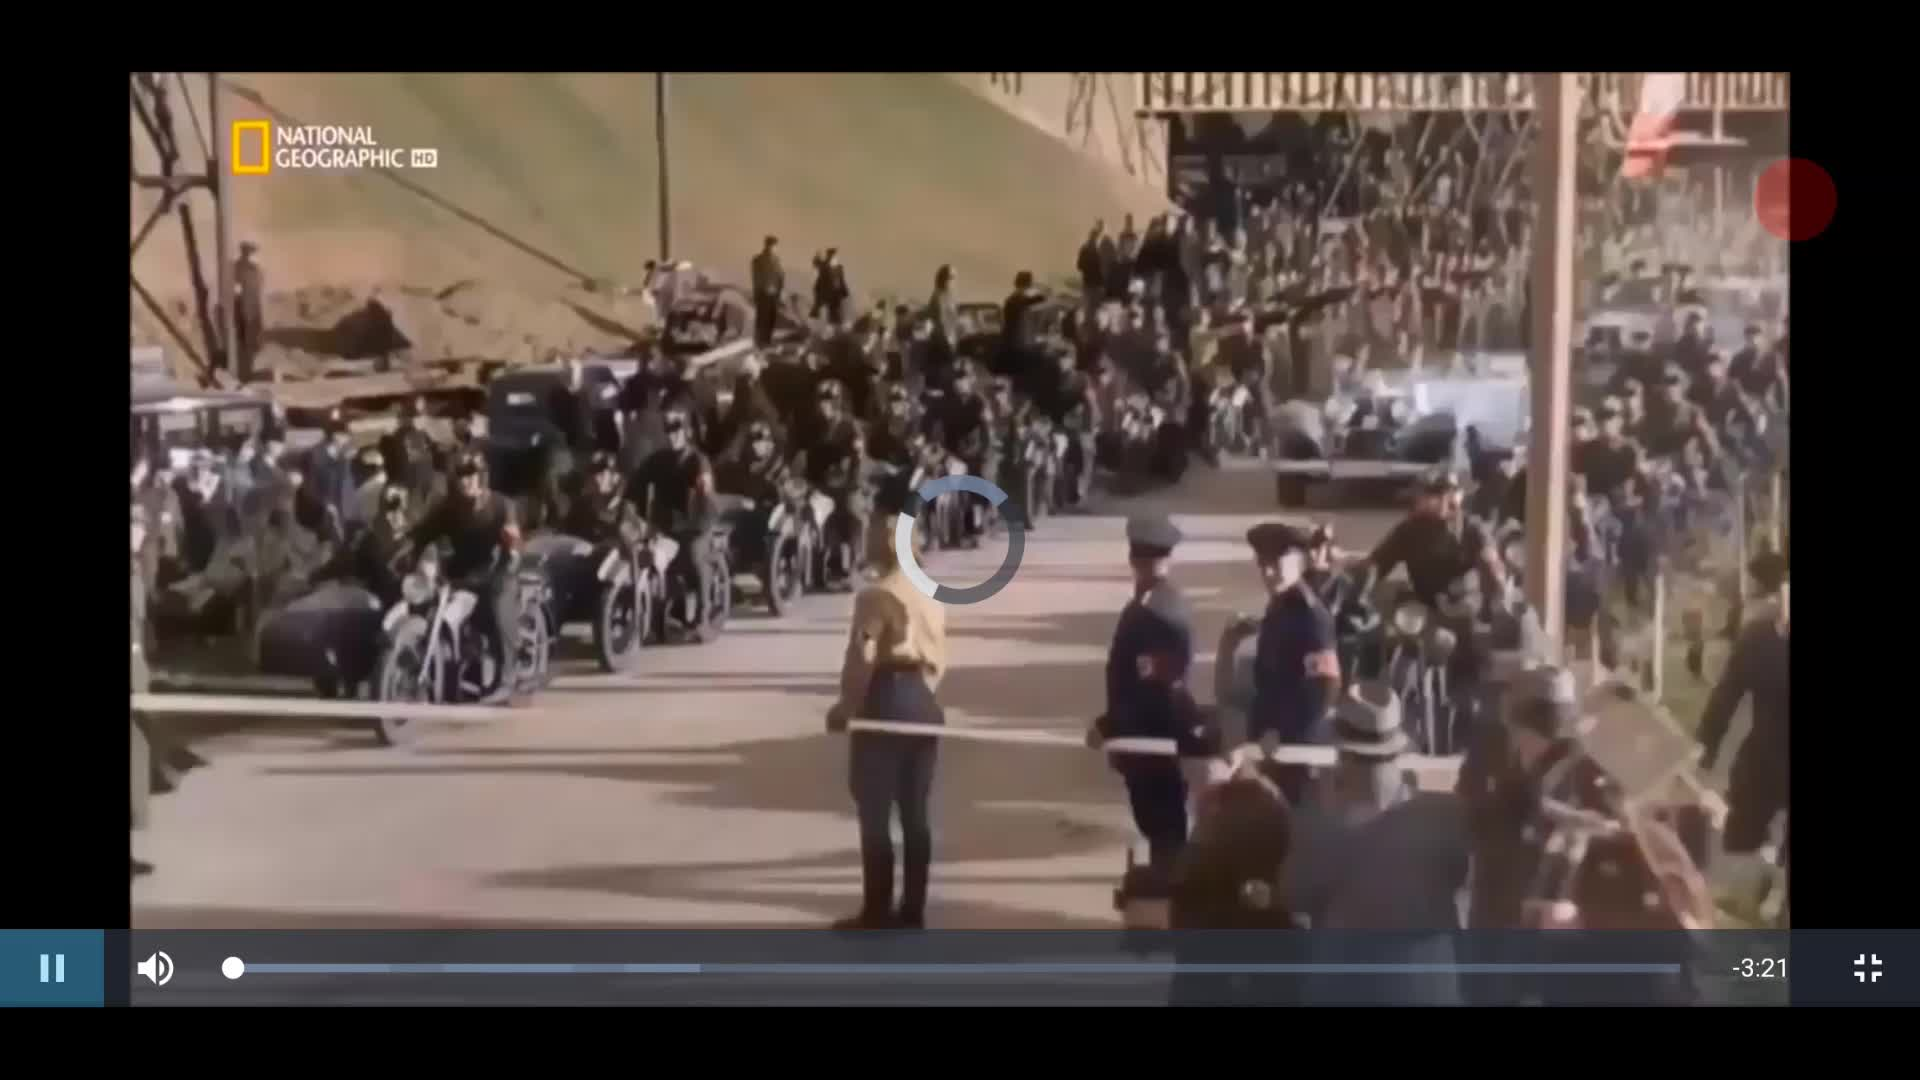 Mercedes-Benz vehicles in use by the Third Reich. (1930s Germany)